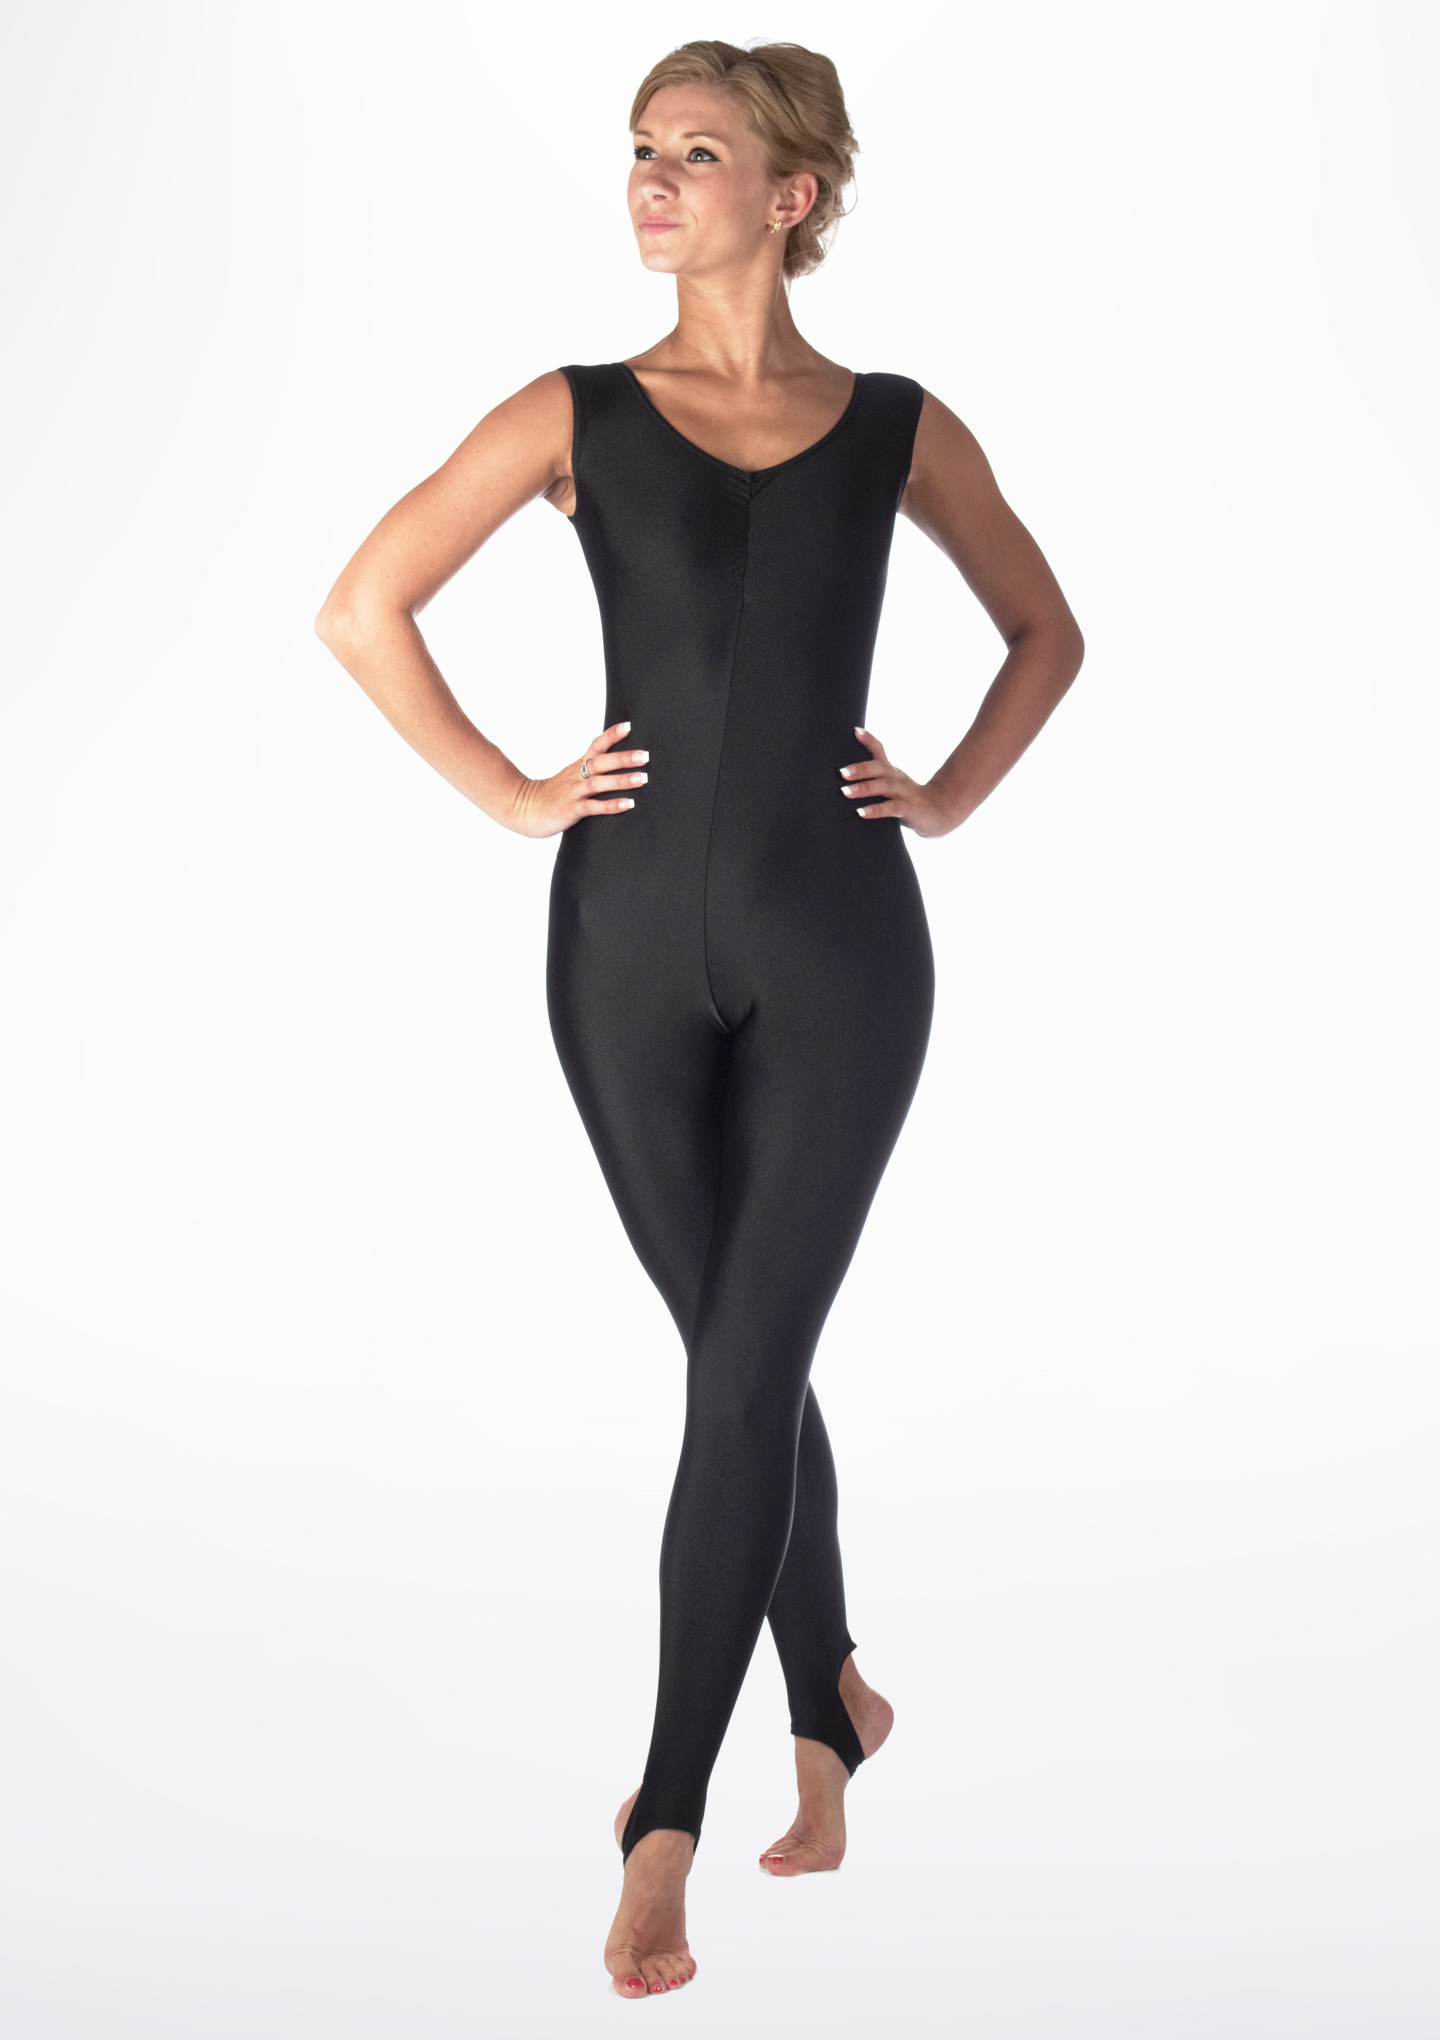 Alegra Girls Shiny Deanna Catsuit Black front. [Black]